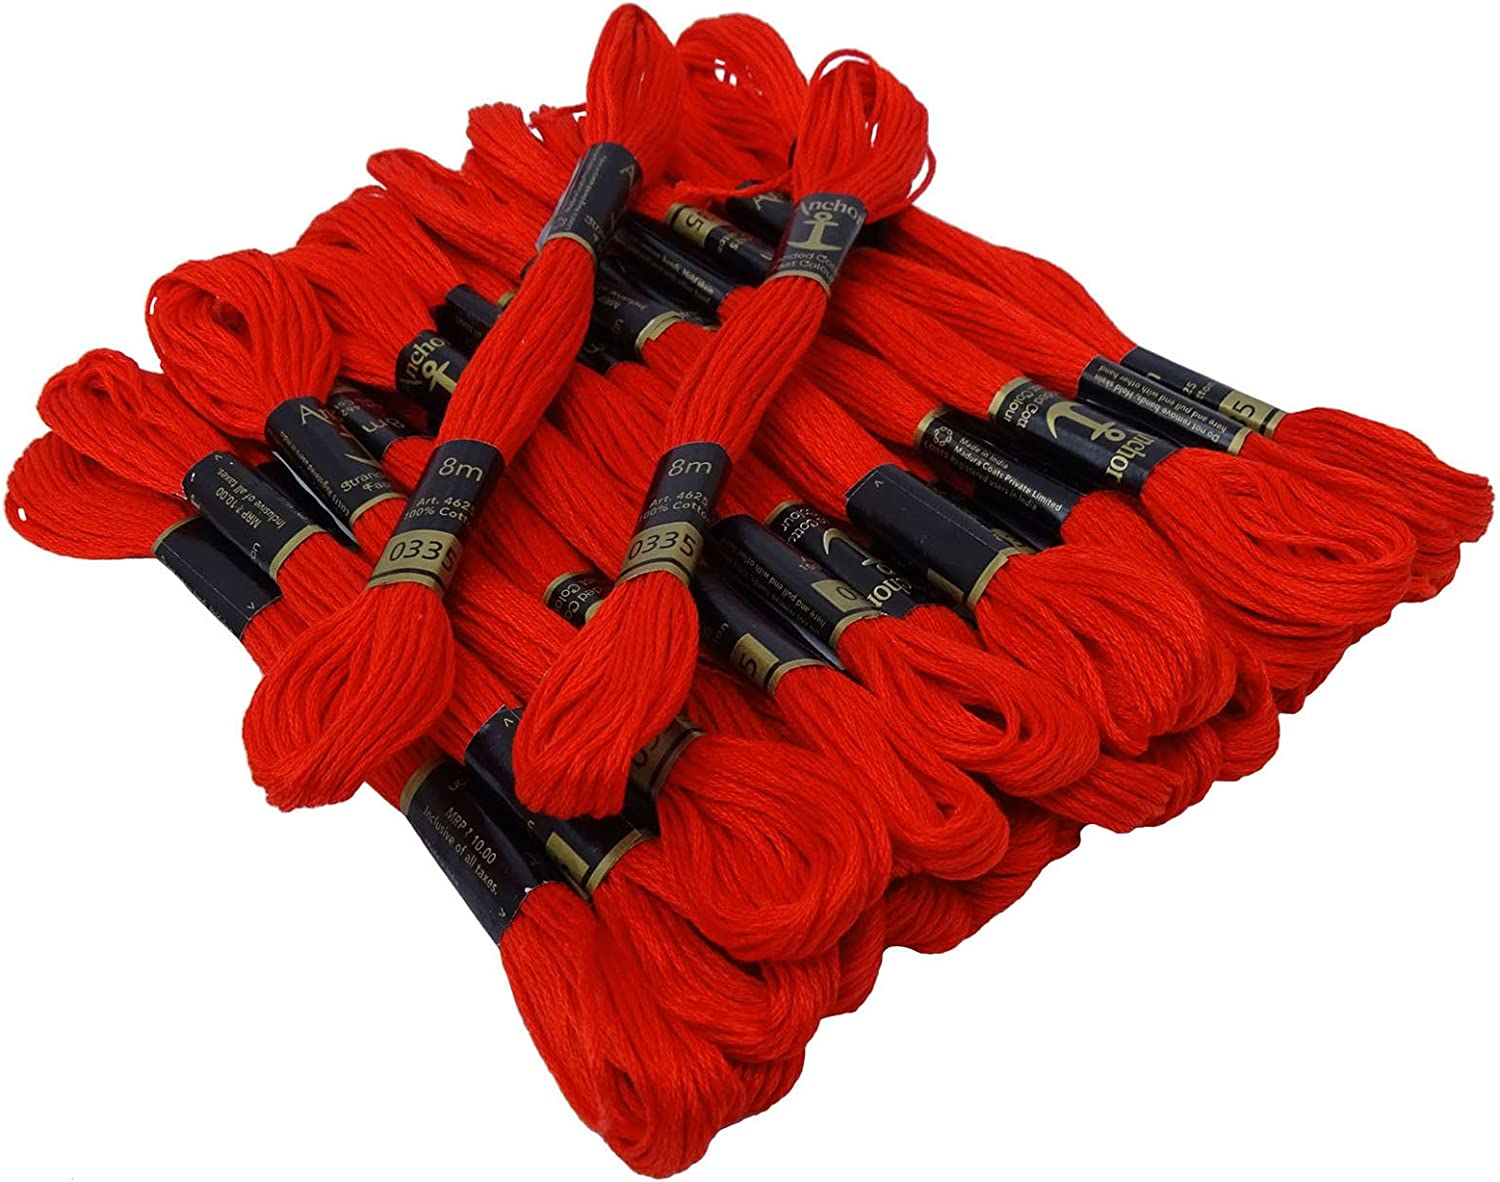 IBA Indianbeautifulart Stranded Cotton Cross Stitch Hand Embroidery Thread Floss Skeins-Red